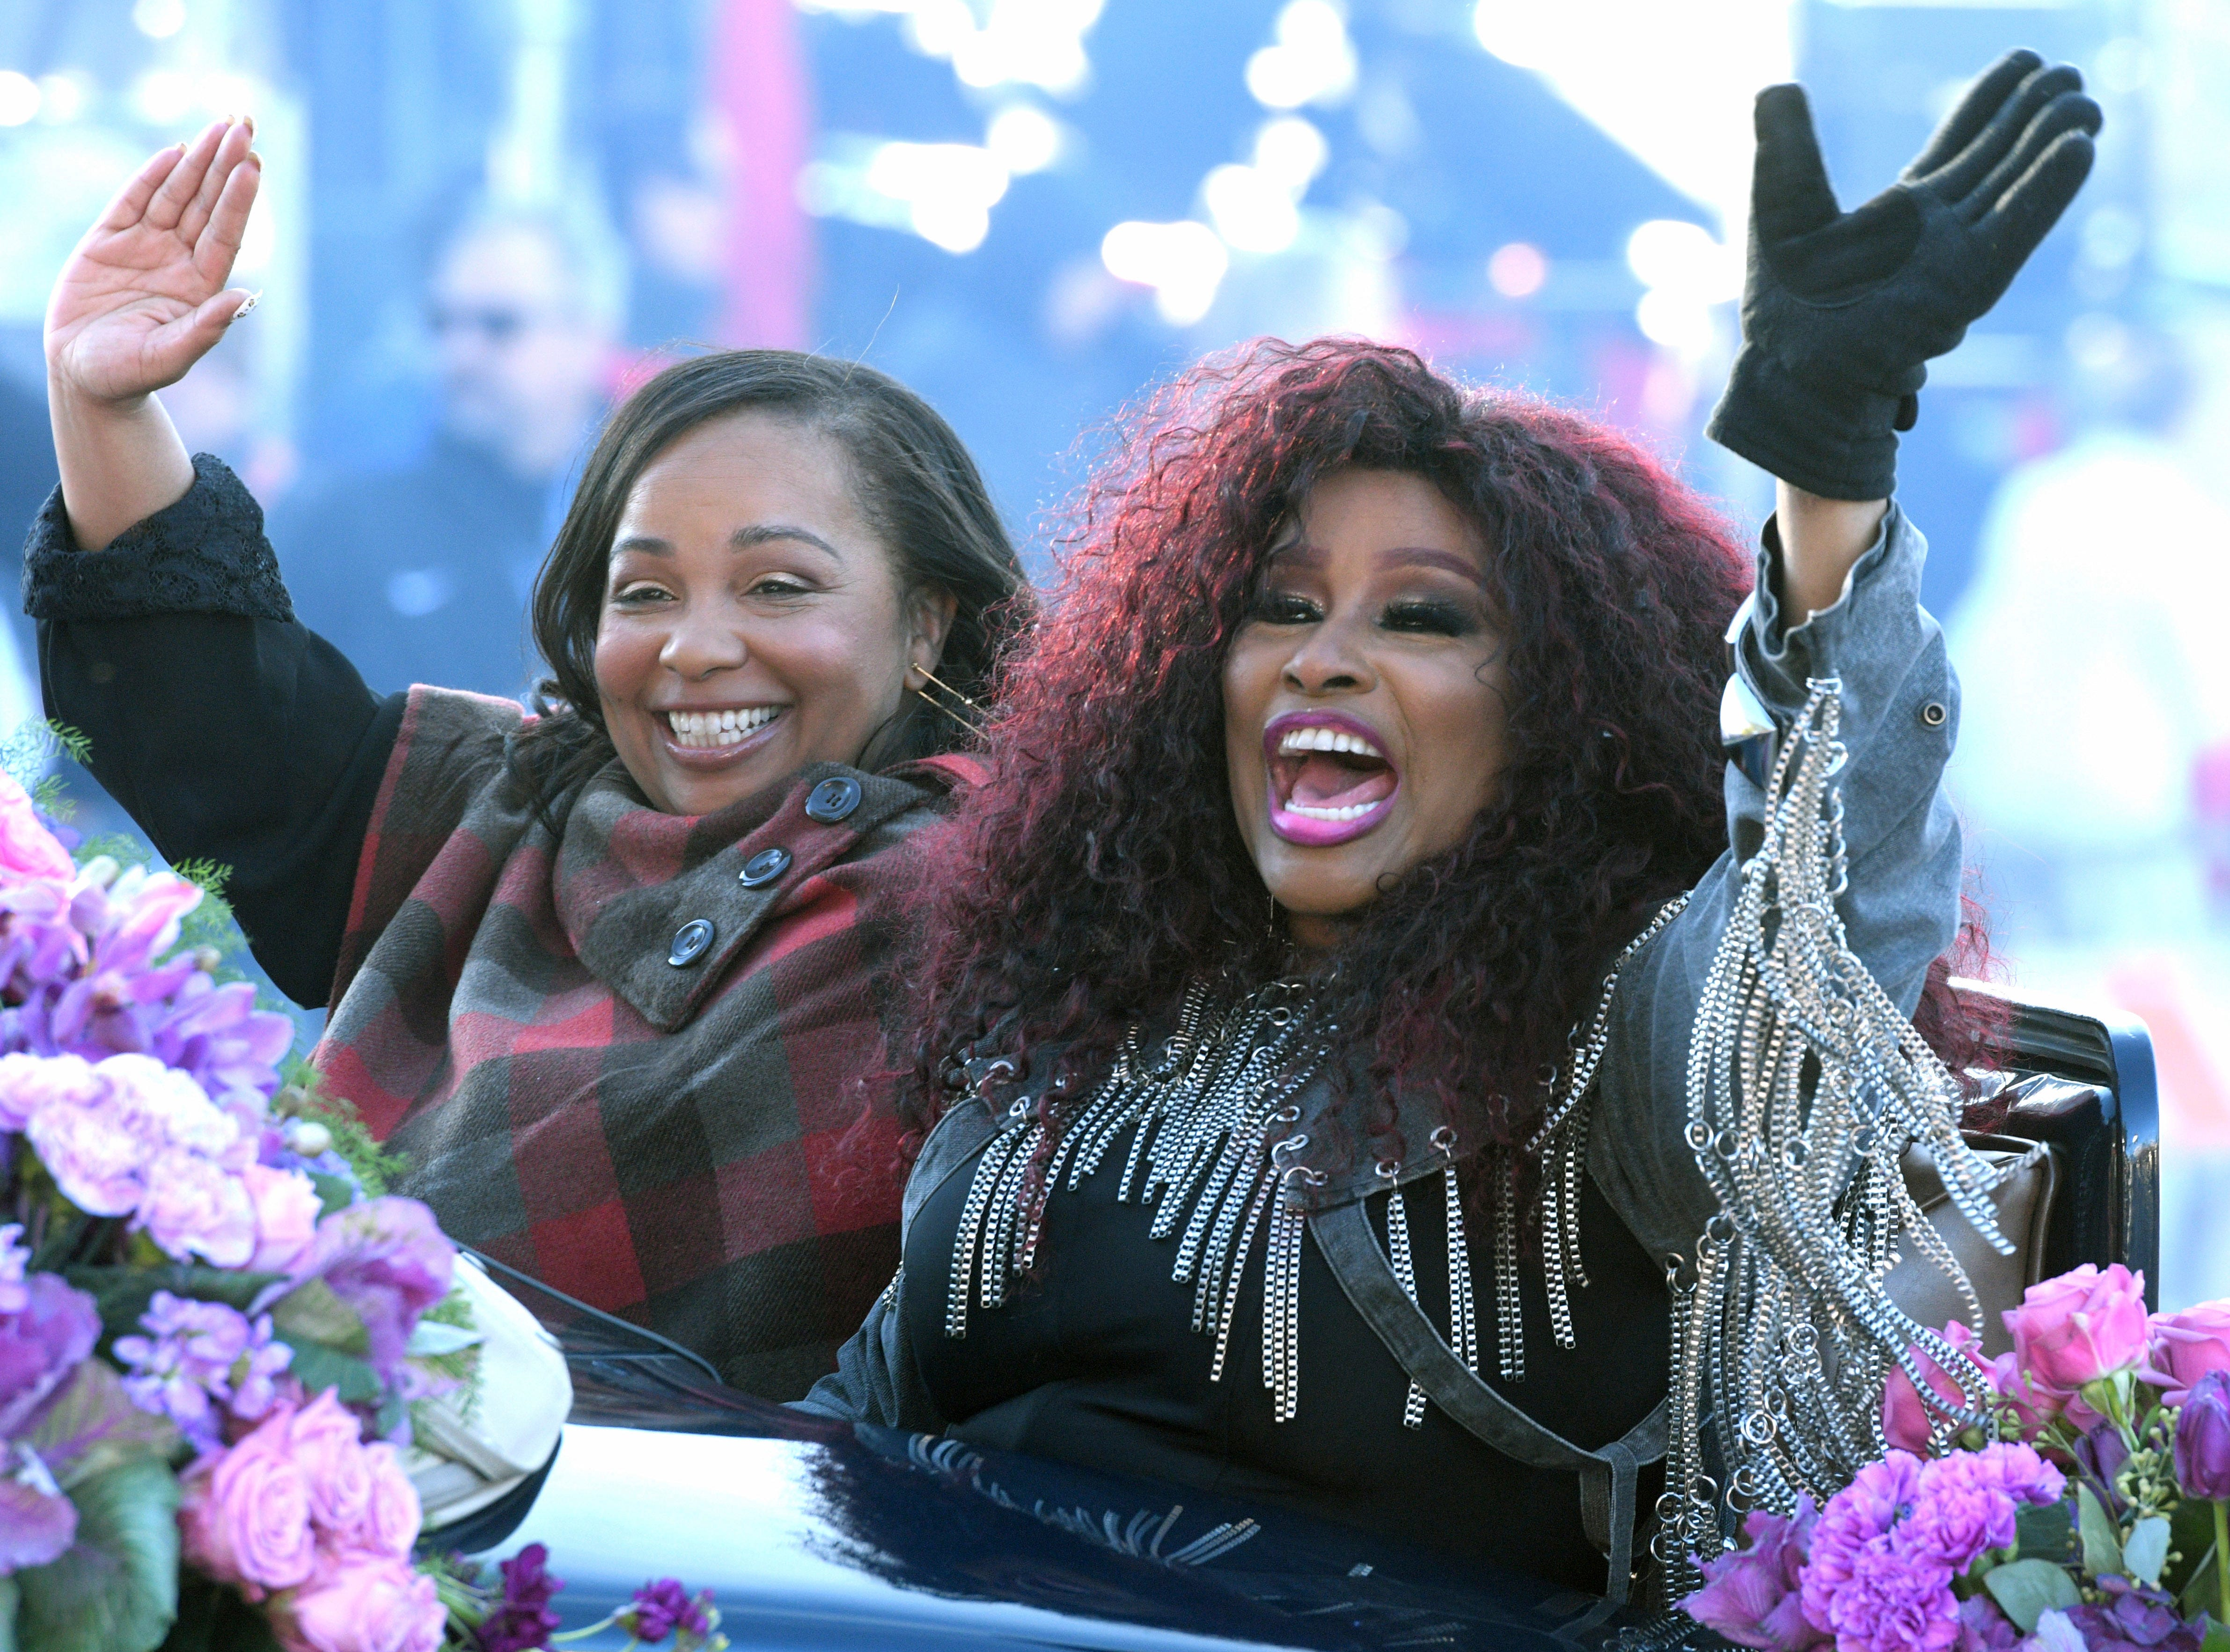 Tournament of Roses Grand Marshal Chaka Khan, right, and her daughter Indira Milini Khan wave to the crowd at the 130th Rose Parade in Pasadena, Calif., Tuesday, Jan. 1, 2019. (AP Photo/Michael Owen Baker) ORG XMIT: CAMB225